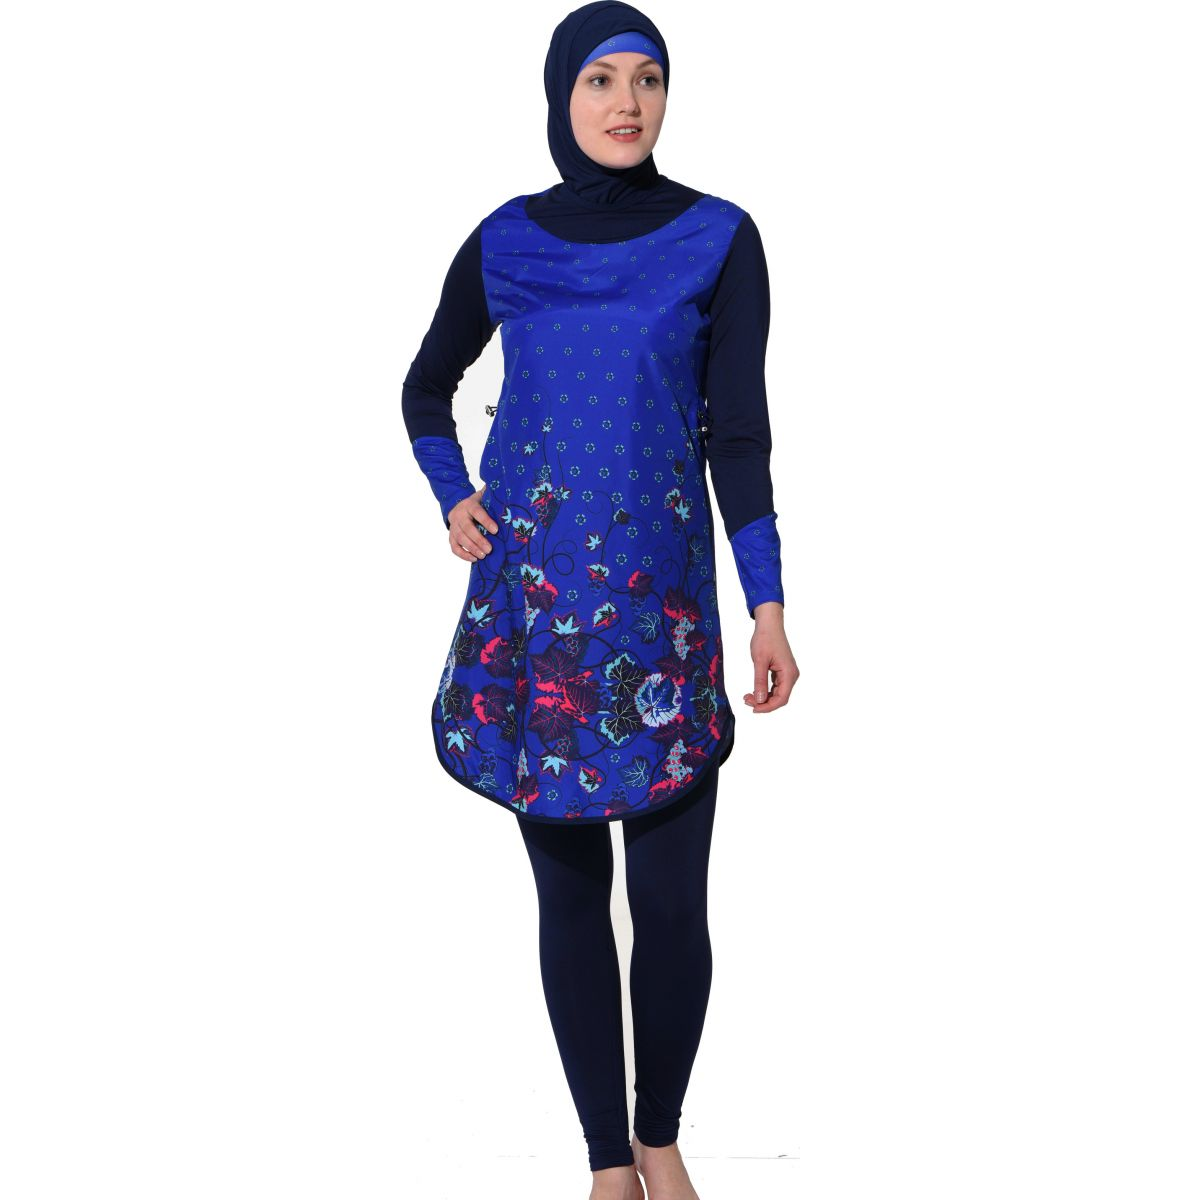 Argisa 7115 Long Sleeve burkini Muslim Swimwear S-XXL Hidden Zipper Hijab Hijab Islamic Swimsuit Burkinis Full Cover Swim surf